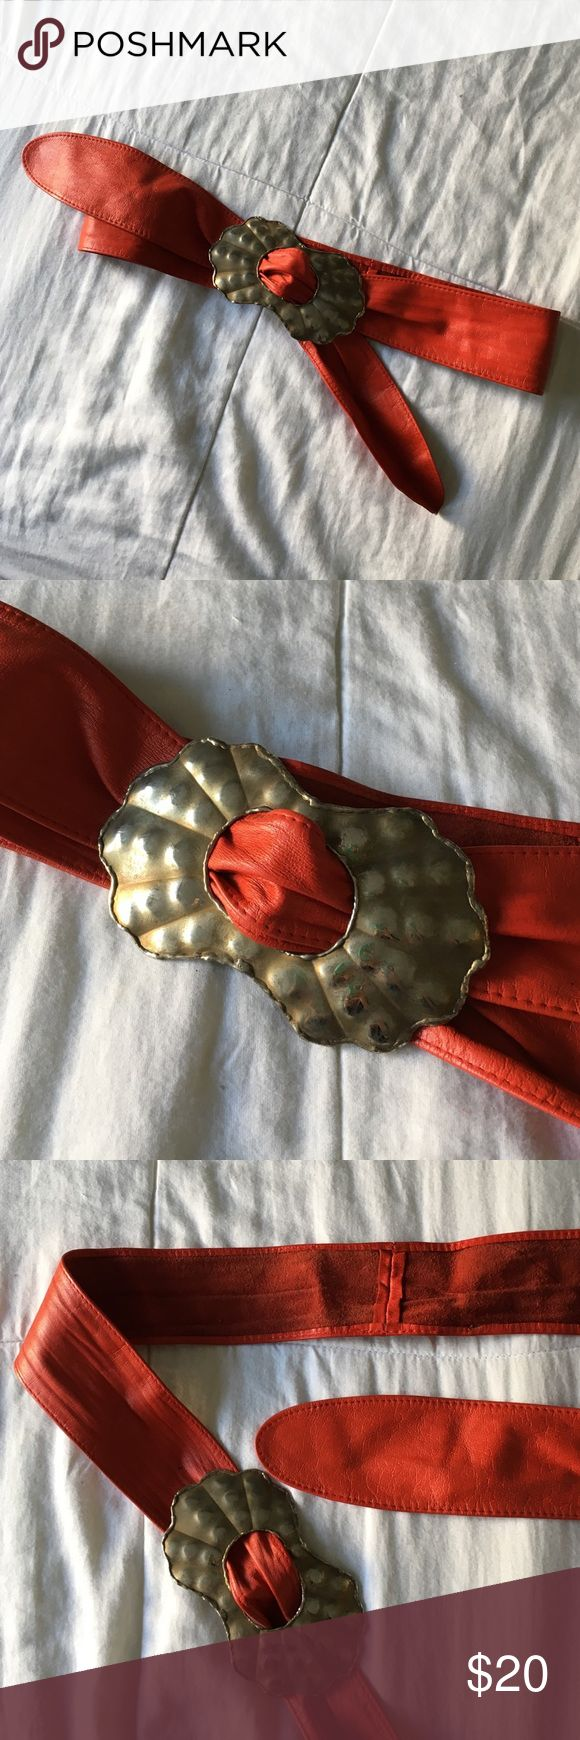 80s Vintage leather belt Red leather belt with hand-made metal buckle. The size is very versatile. 47 inches long. This is from my mom's days as a New Wave party girl in NYC  --- 🙏🏼 --- ➡️ Can't hurt to make an offer!  ➡️ I always ship next day! FYI the package doesn't get scanned until it leaves the shipping center.  ➡️ Please use the offer button! I can't take offers in comment and I won't email you to sell off of PM. Vintage Accessories Belts